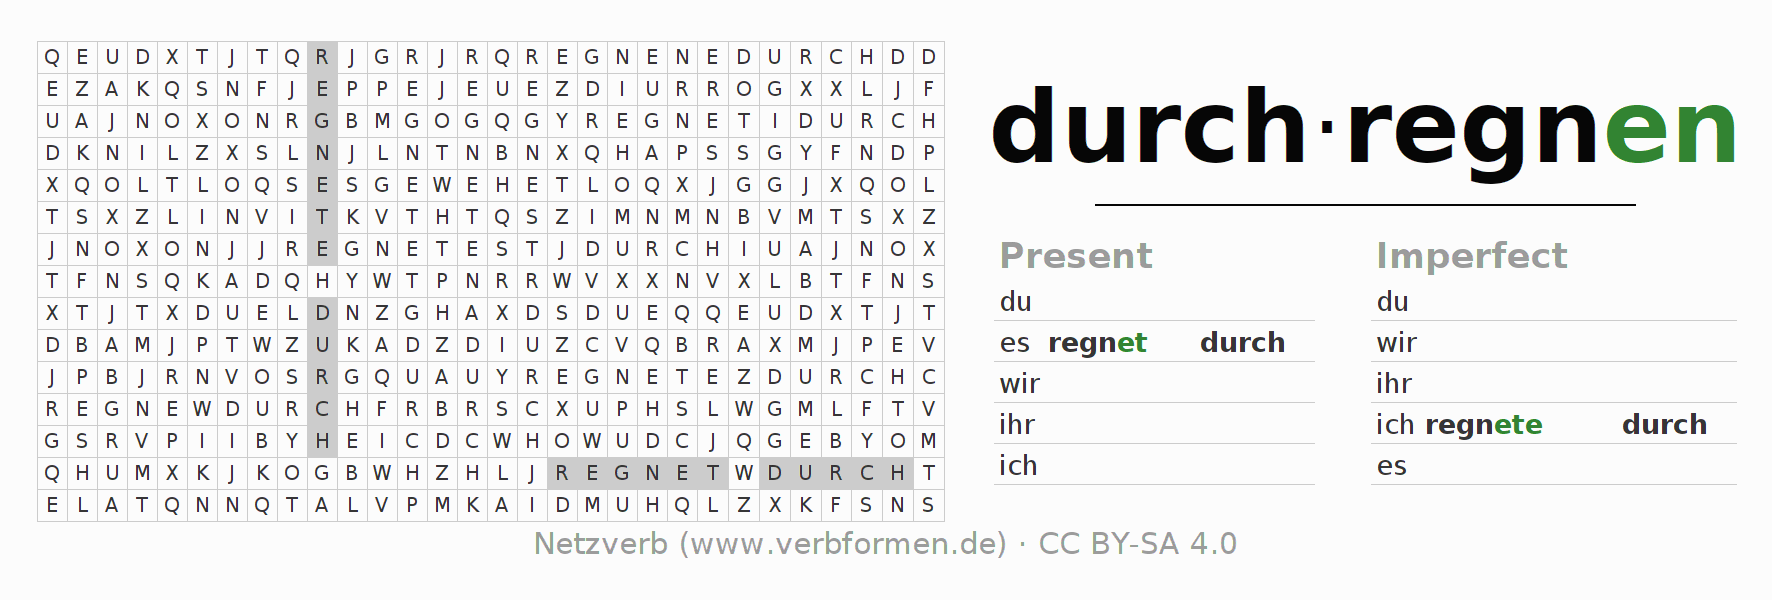 Word search puzzle for the conjugation of the verb durchregnen